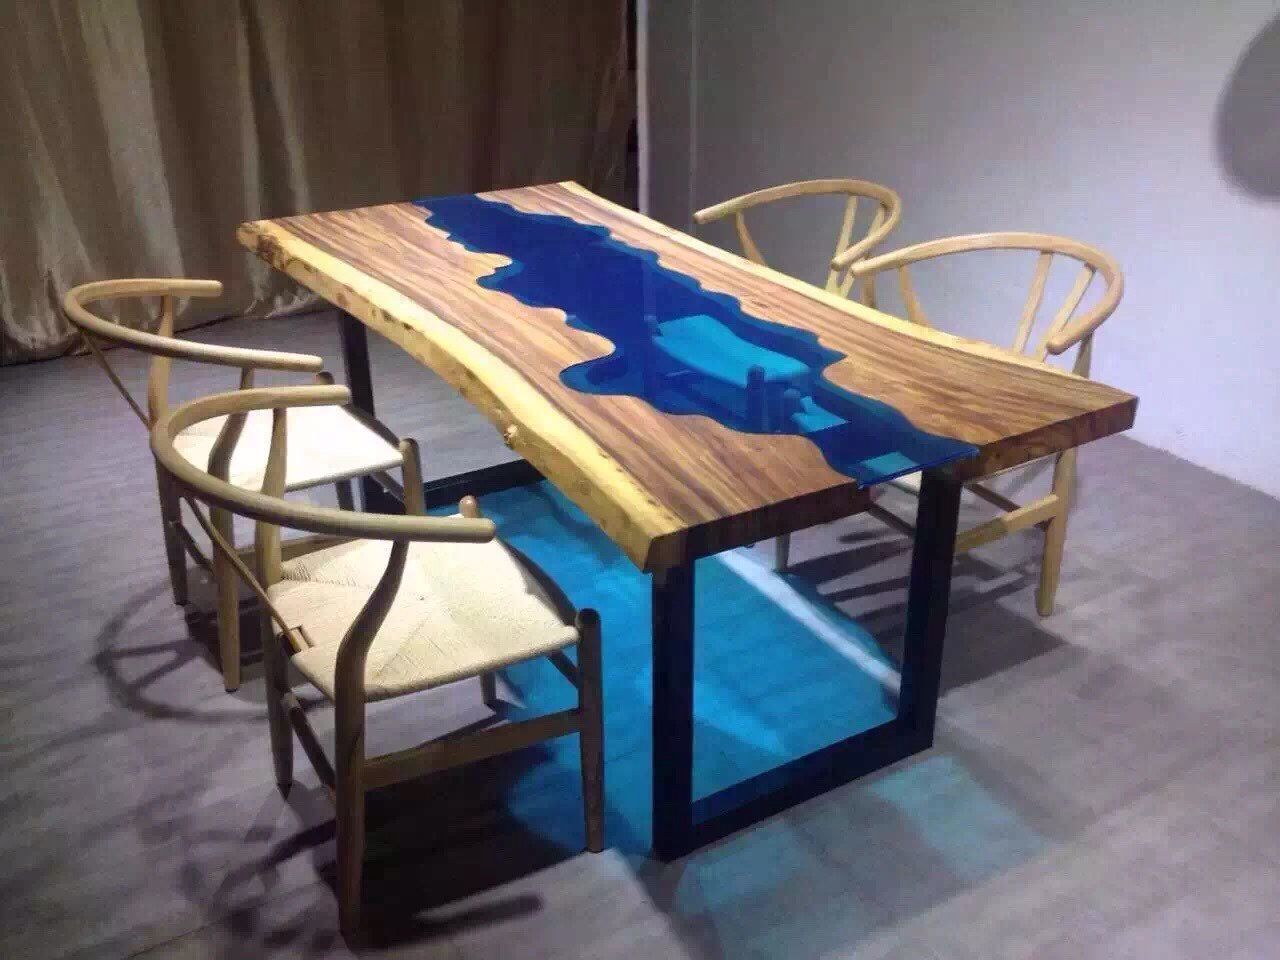 custom made acacia live edge river wood and glass dining table made